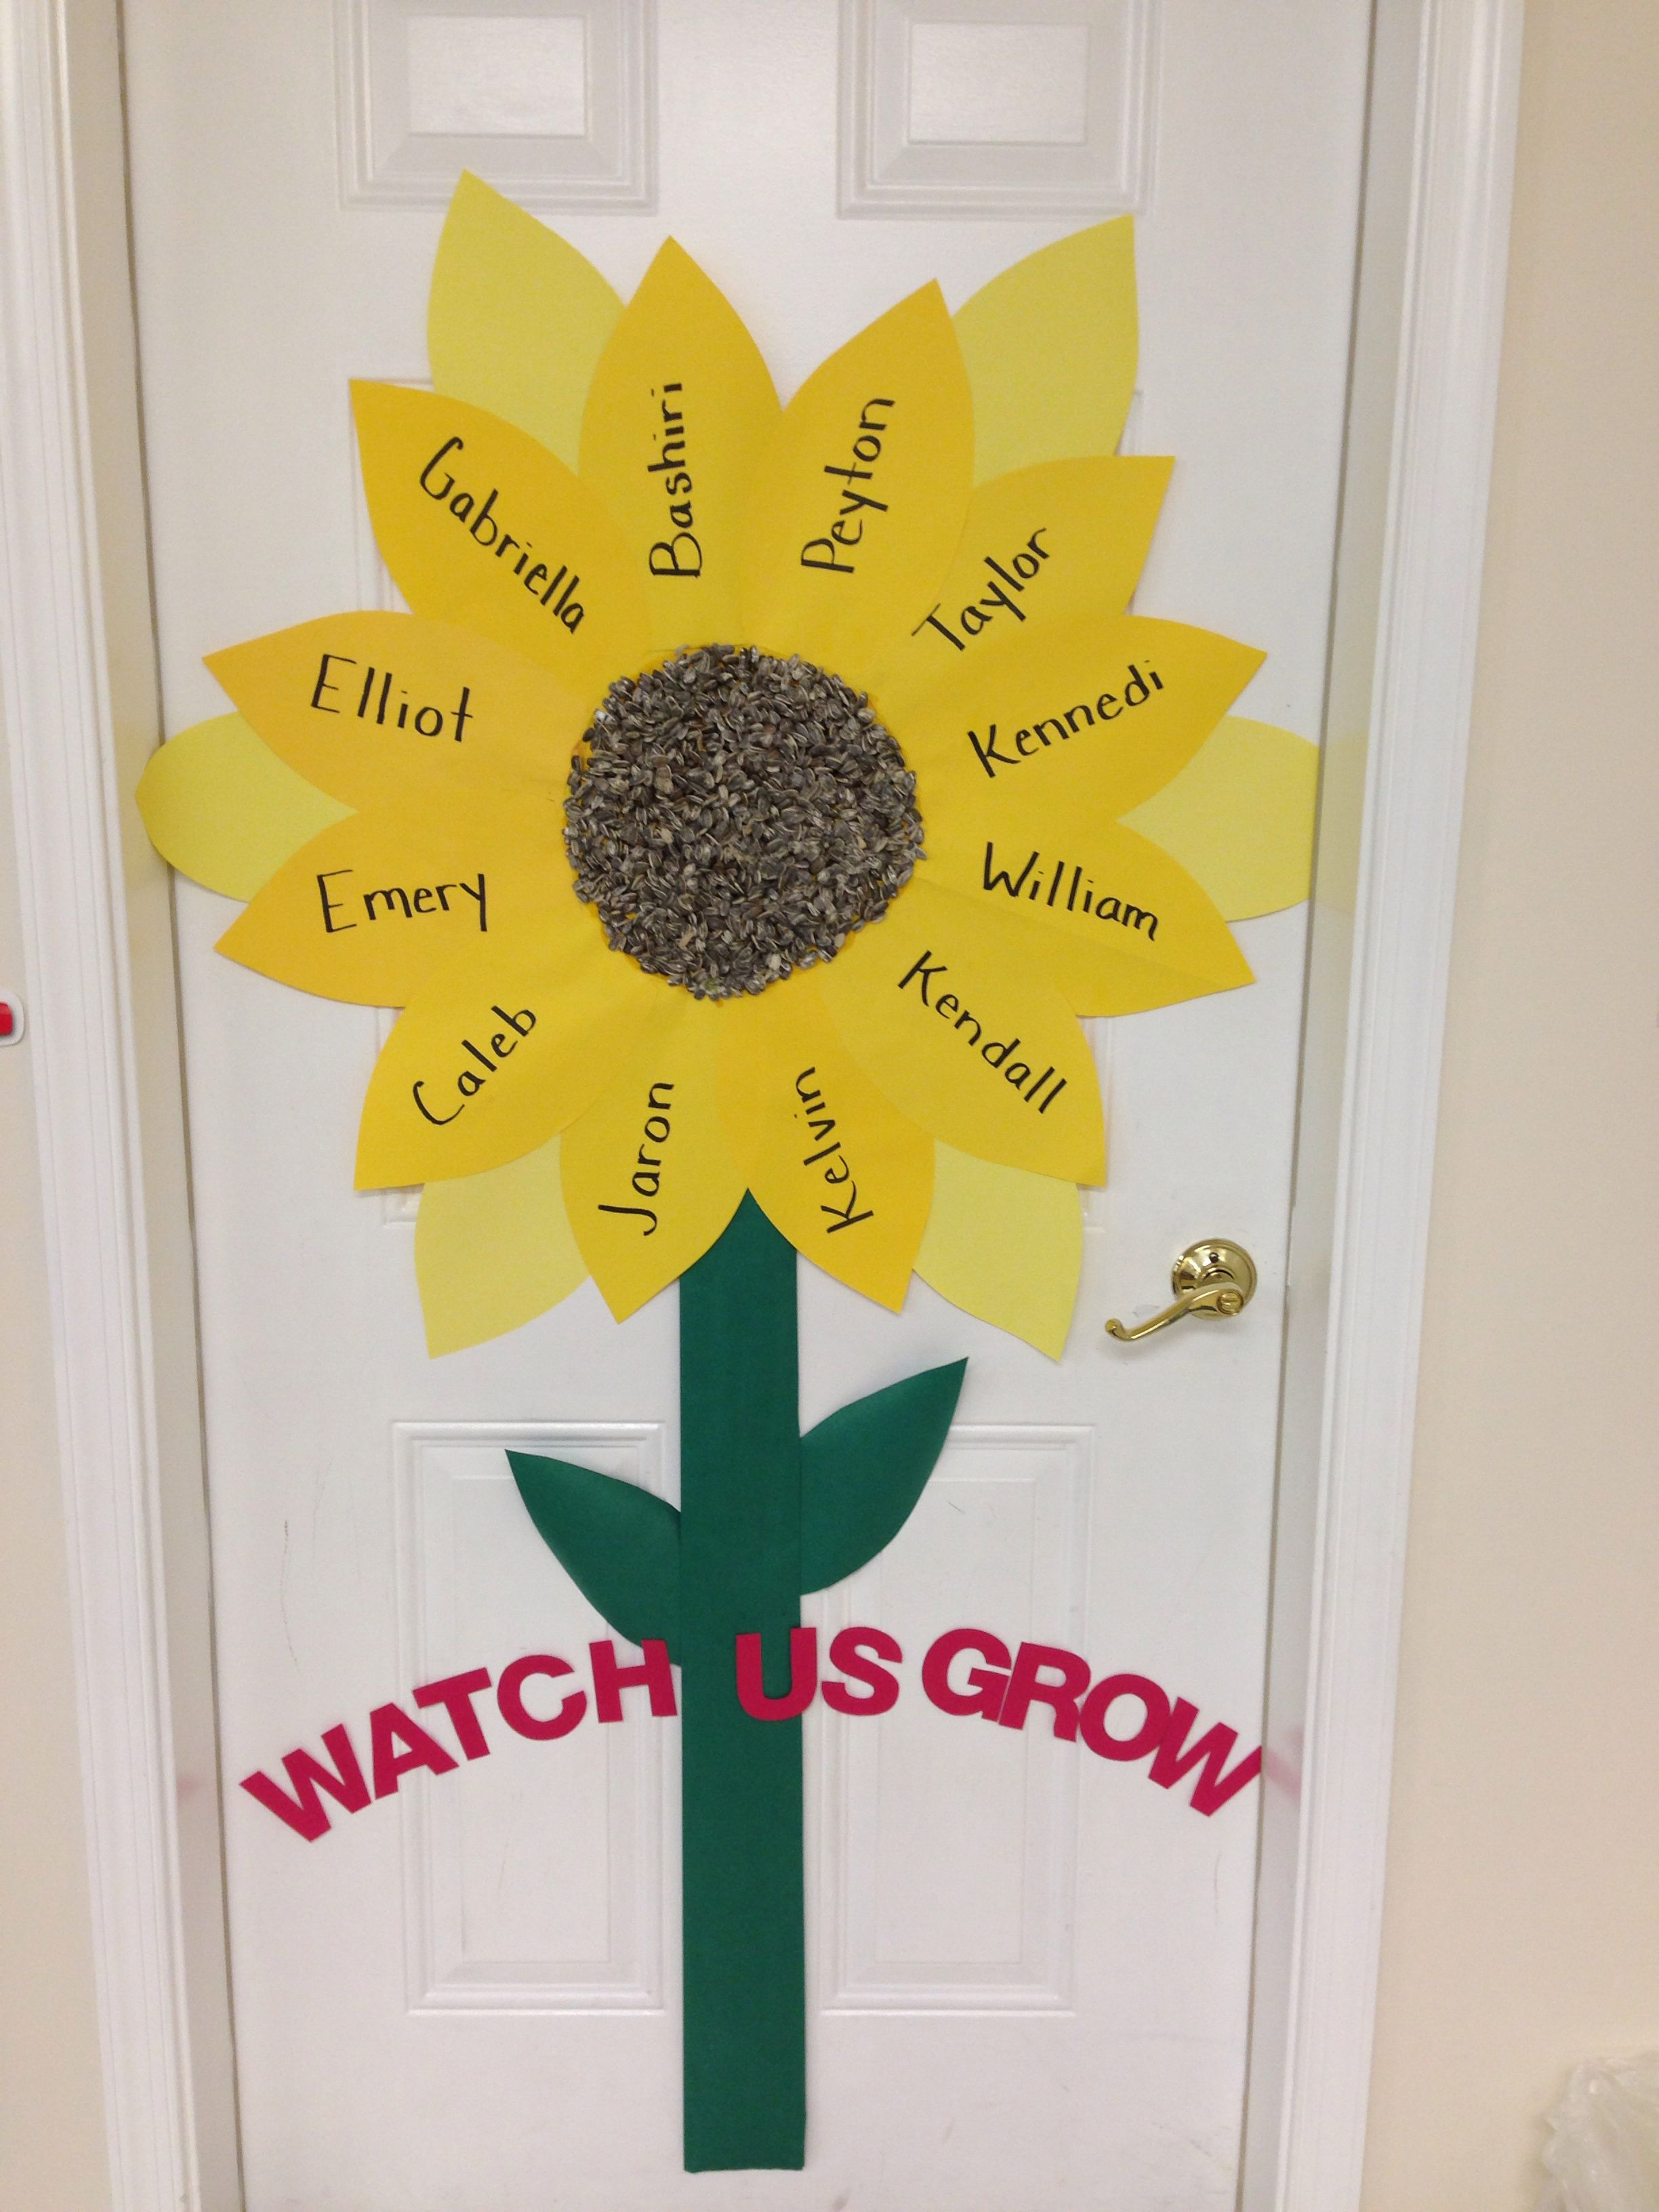 Watch Us Grow Sunflower W Sunflower Seeds